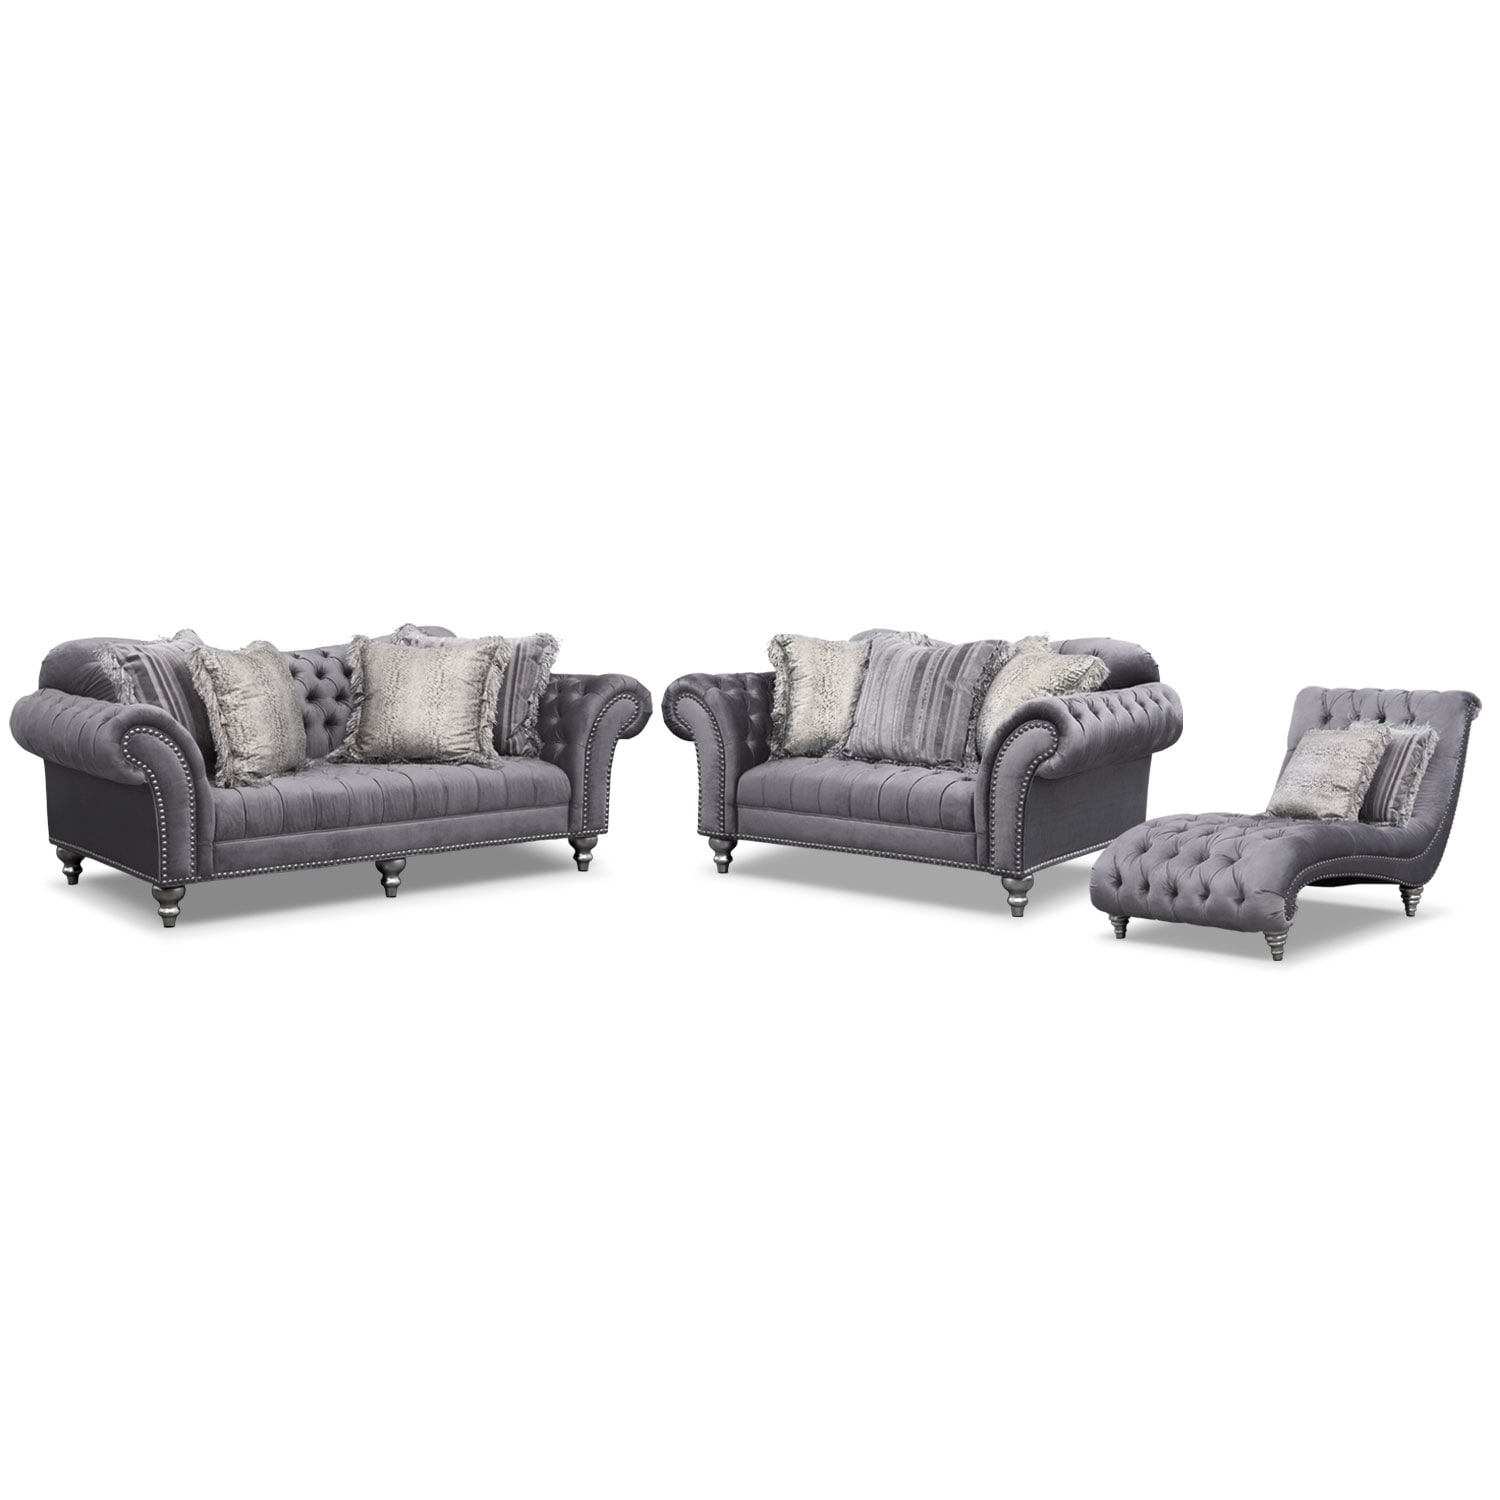 Brittney Sofa, Loveseat and Chaise Set - Gray